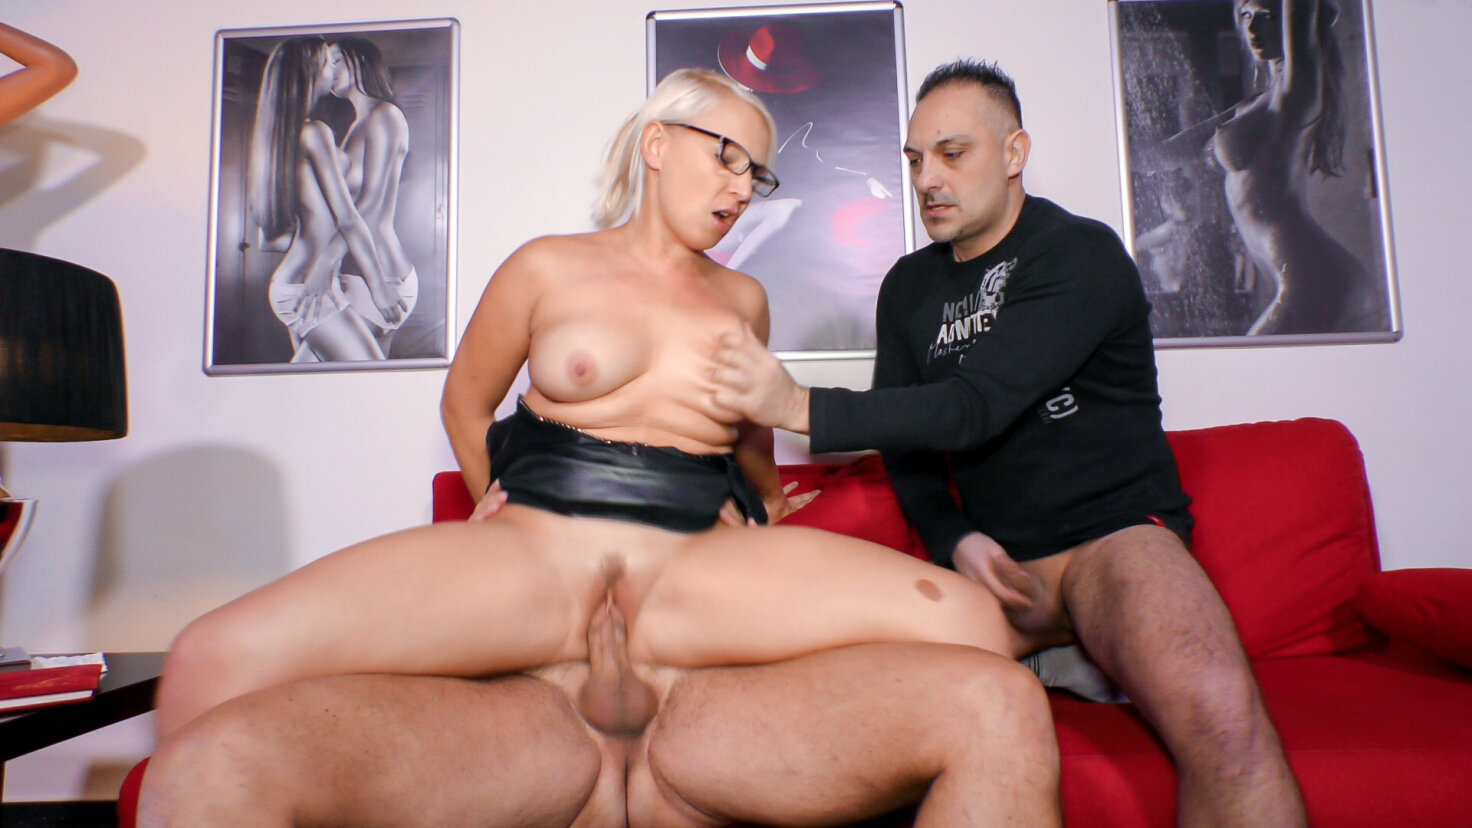 Mature German lady Gina Blonde gets two cocks in her pussy and mouth